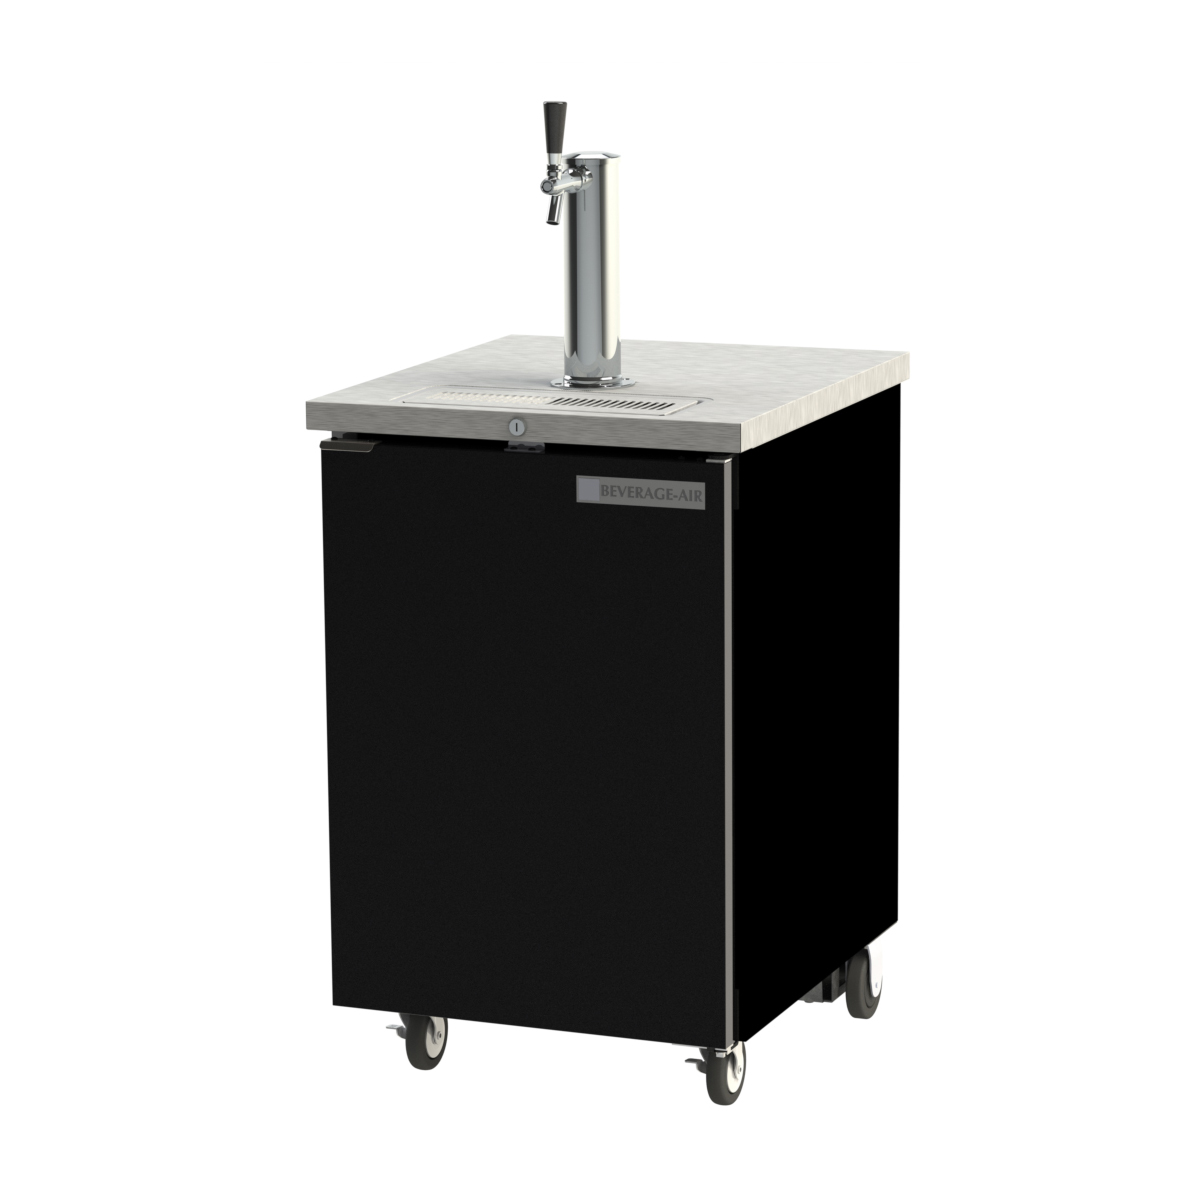 DD24HC-1-B Beverage Air draft beer cooler